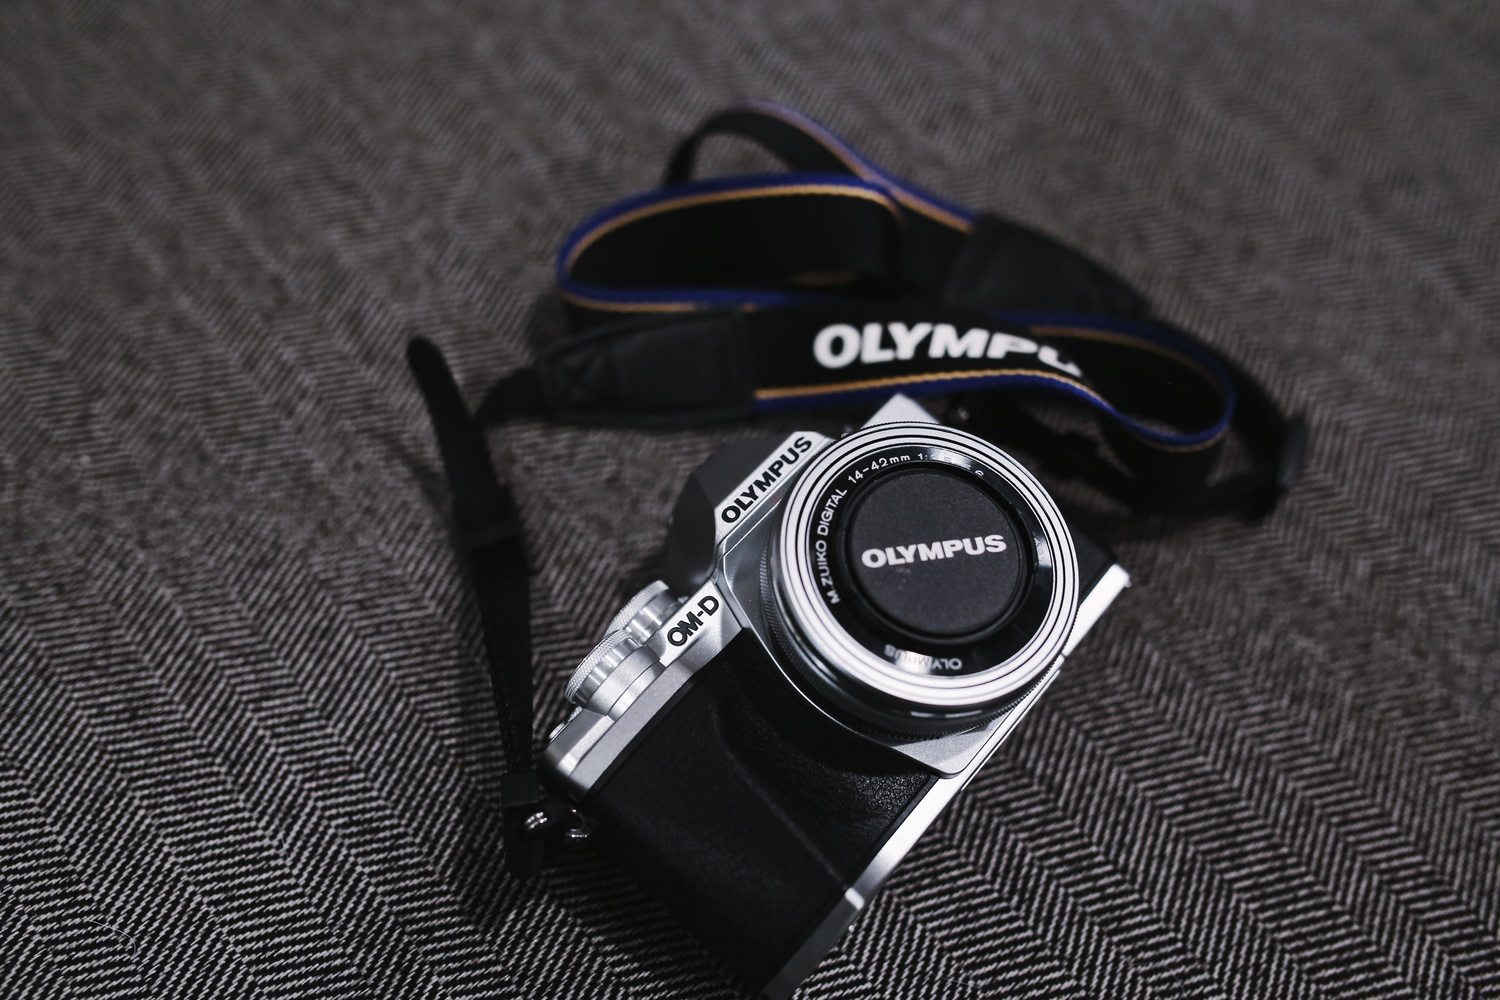 Fstoppers Reviews the Olympus OM-D EM10 Mark III: One of the